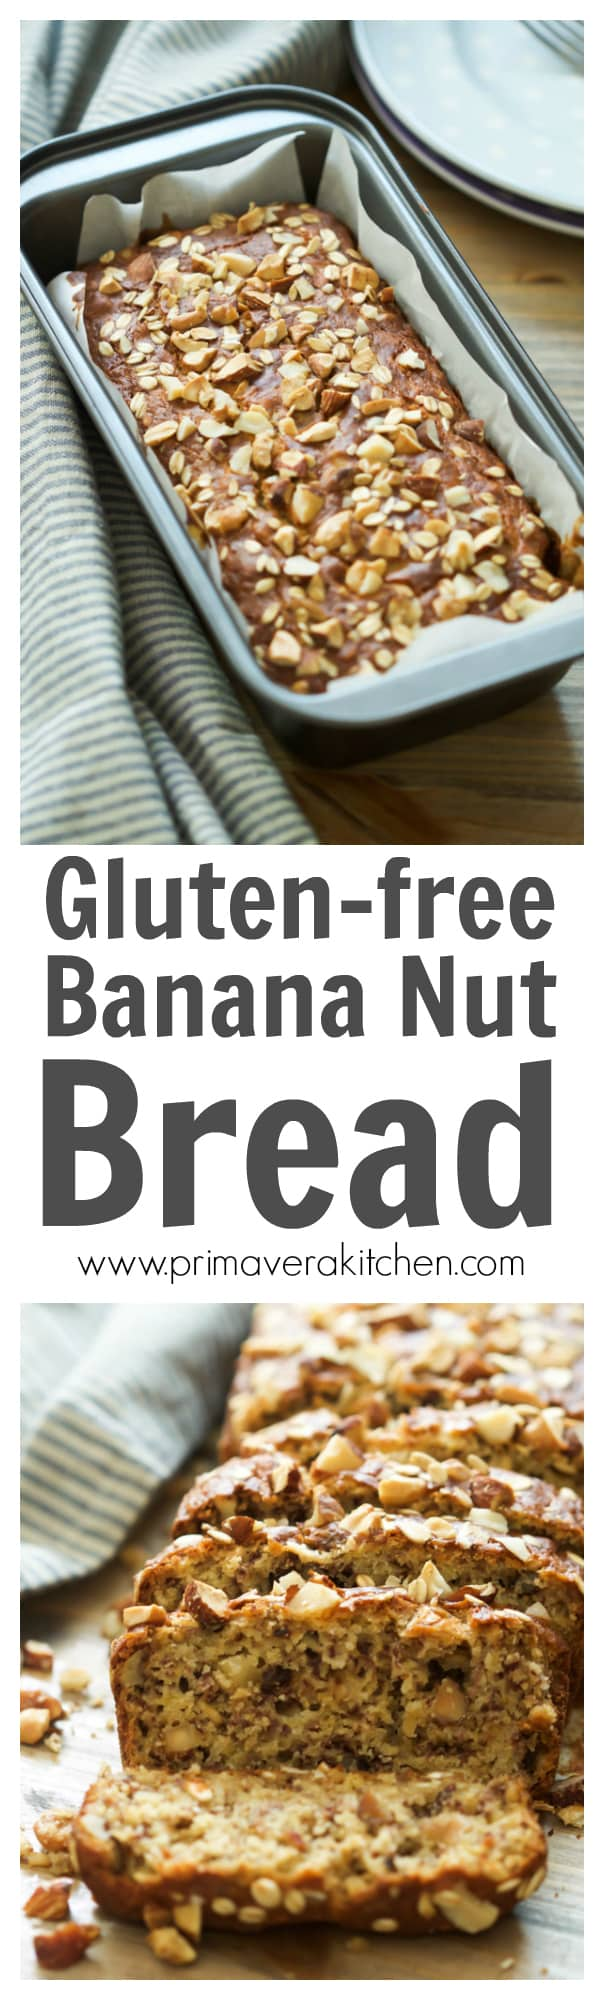 gluten-free-banana-nut-bread - This Gluten-free Banana Nut Bread is made with rice flour, Greek yogurt, rolled oats and coconut oil. This is also naturally sweetened and will make your home smells like Autumn! Enjoy!